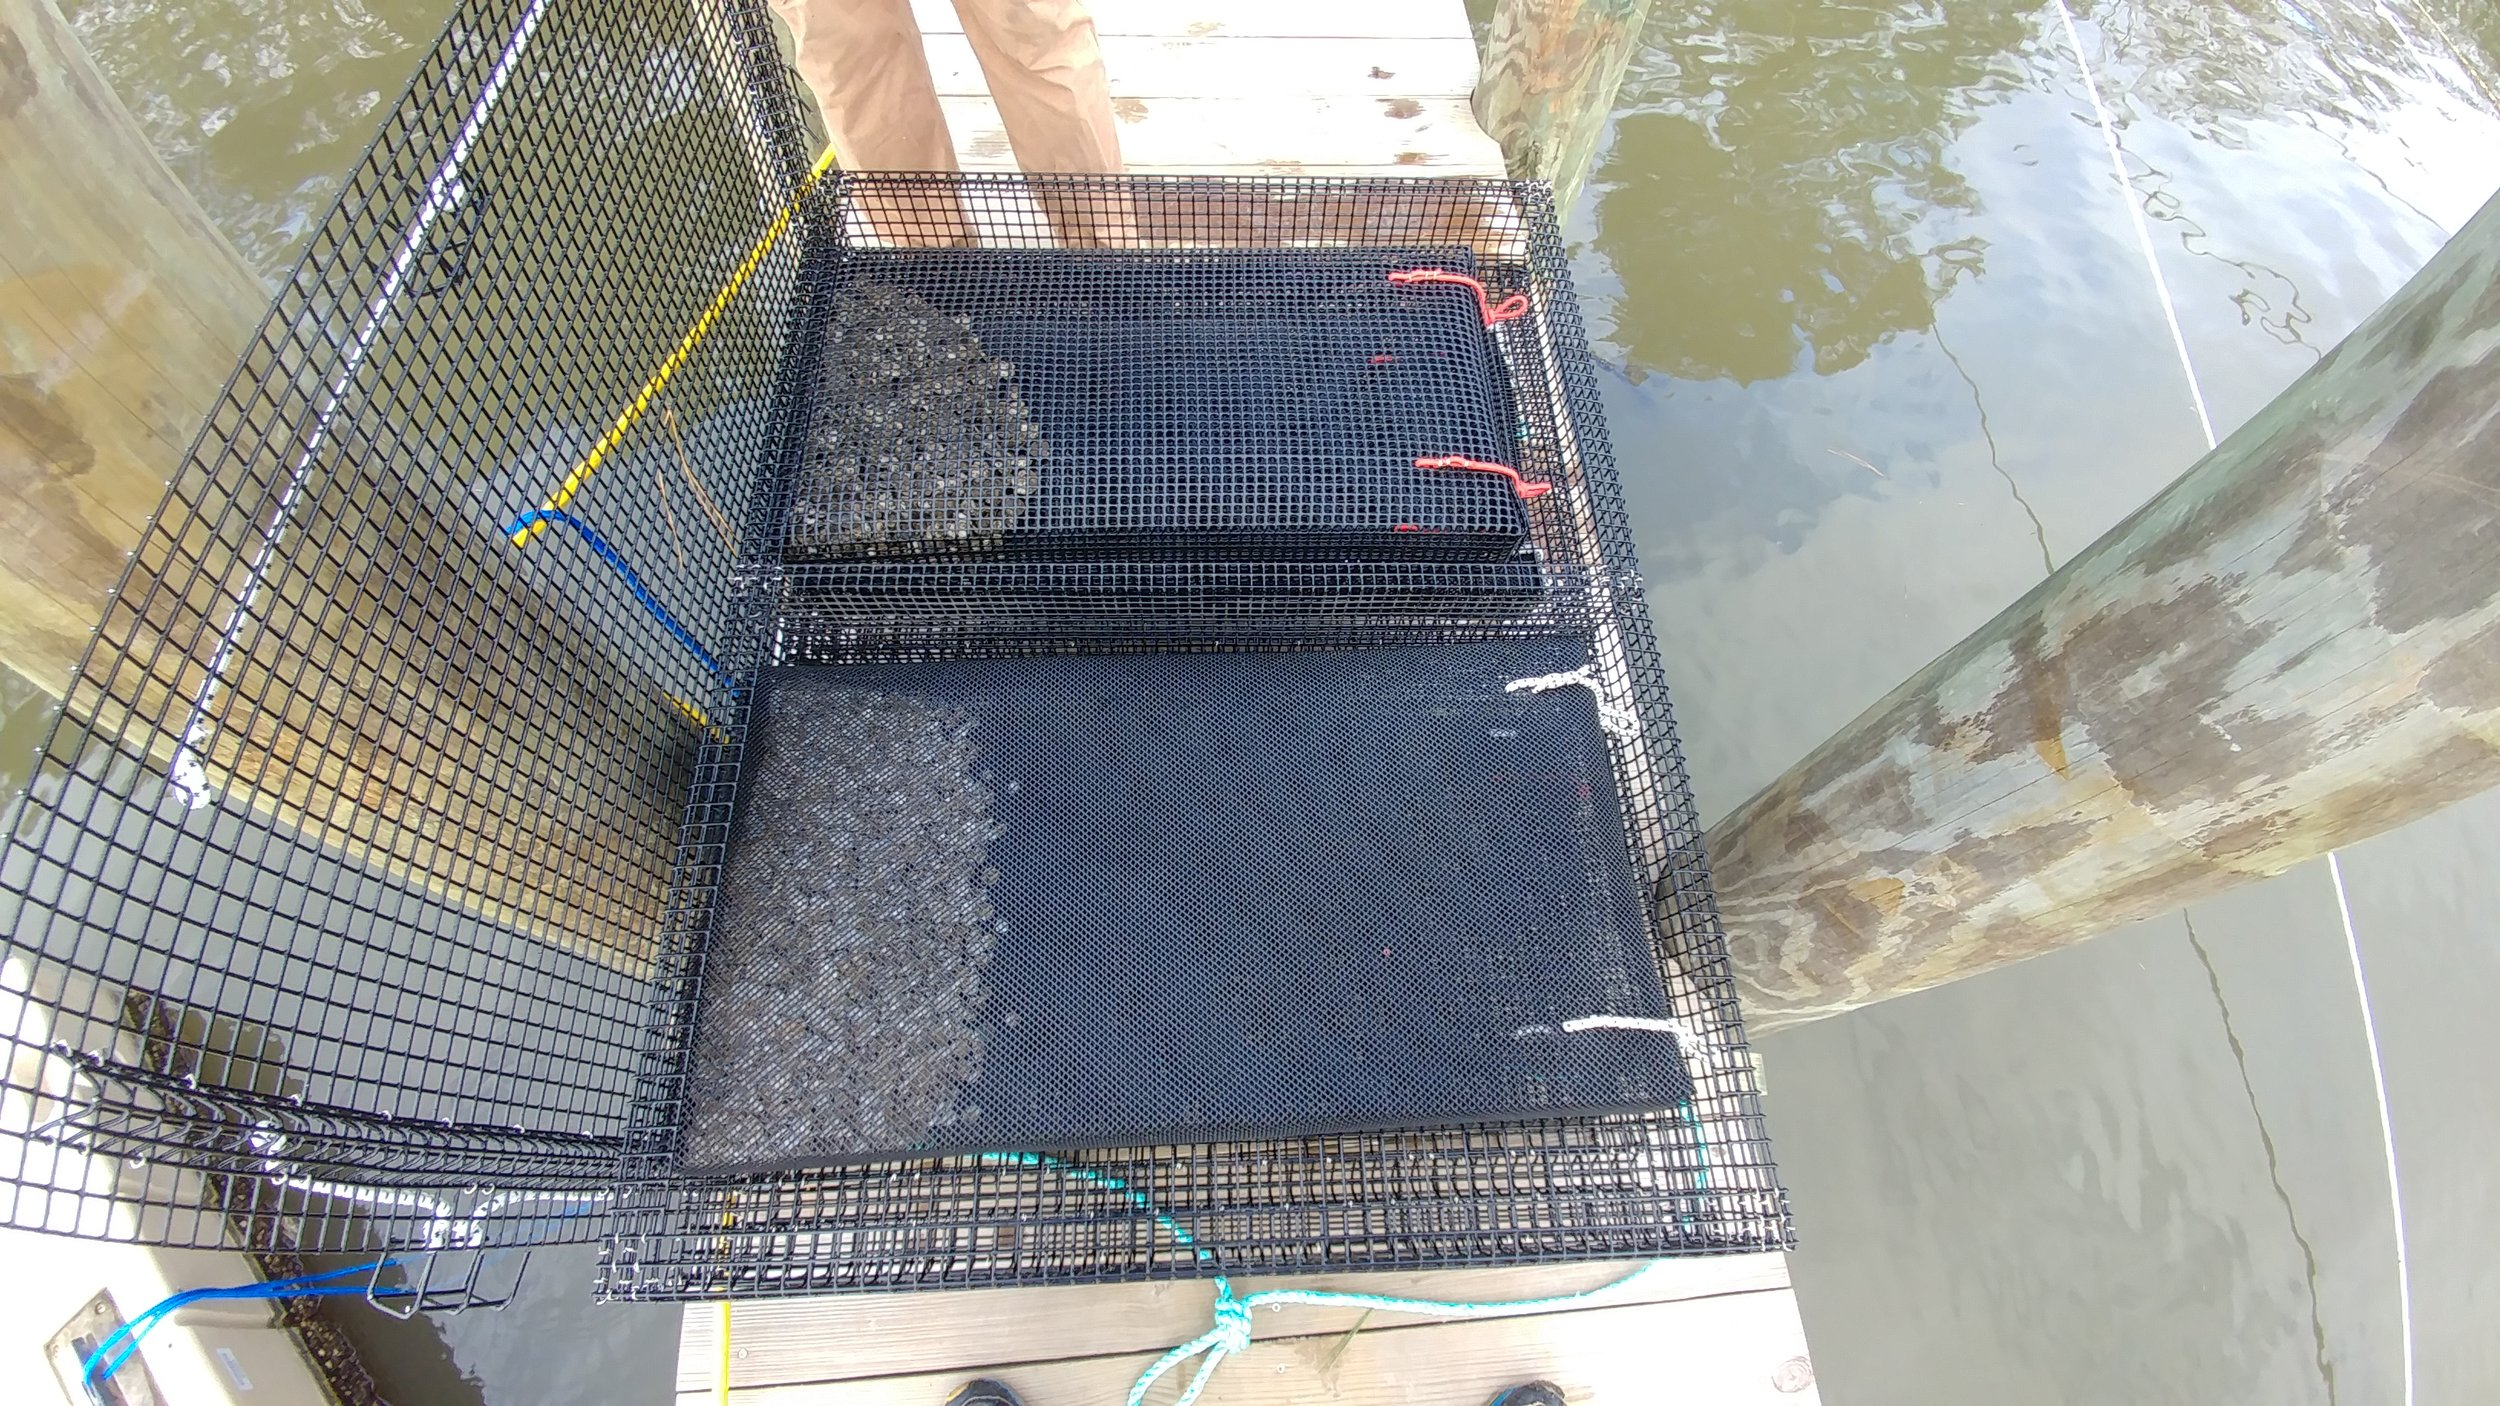 Bottom Cages with Bags